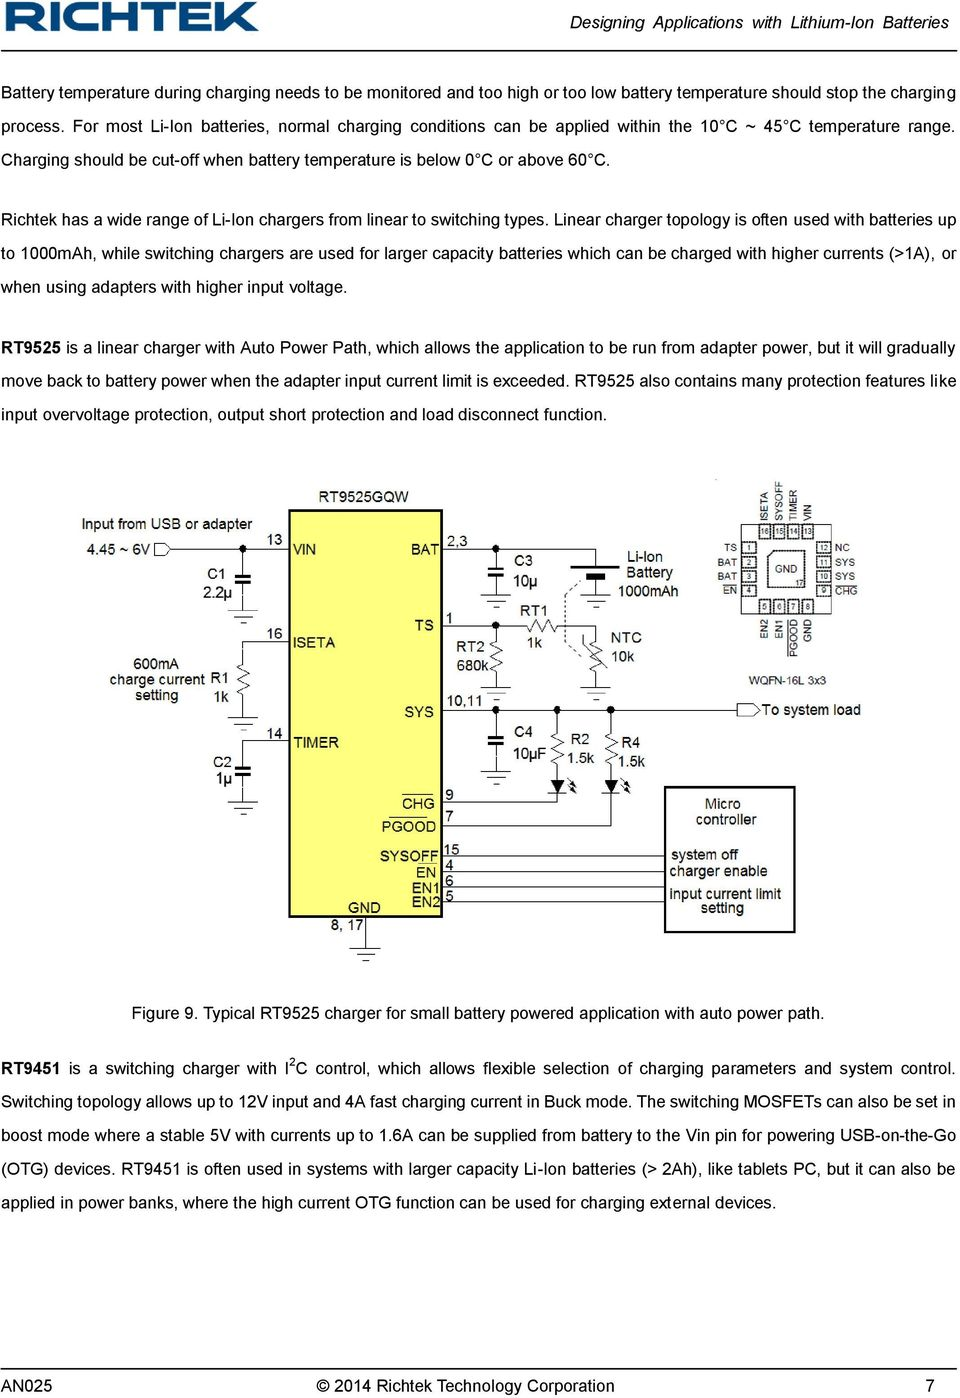 Designing Applications With Lithium Ion Batteries Pdf How To Build Solar Lamp Using Pr4403 Richtek Has A Wide Range Of Li Chargers From Linear Switching Types